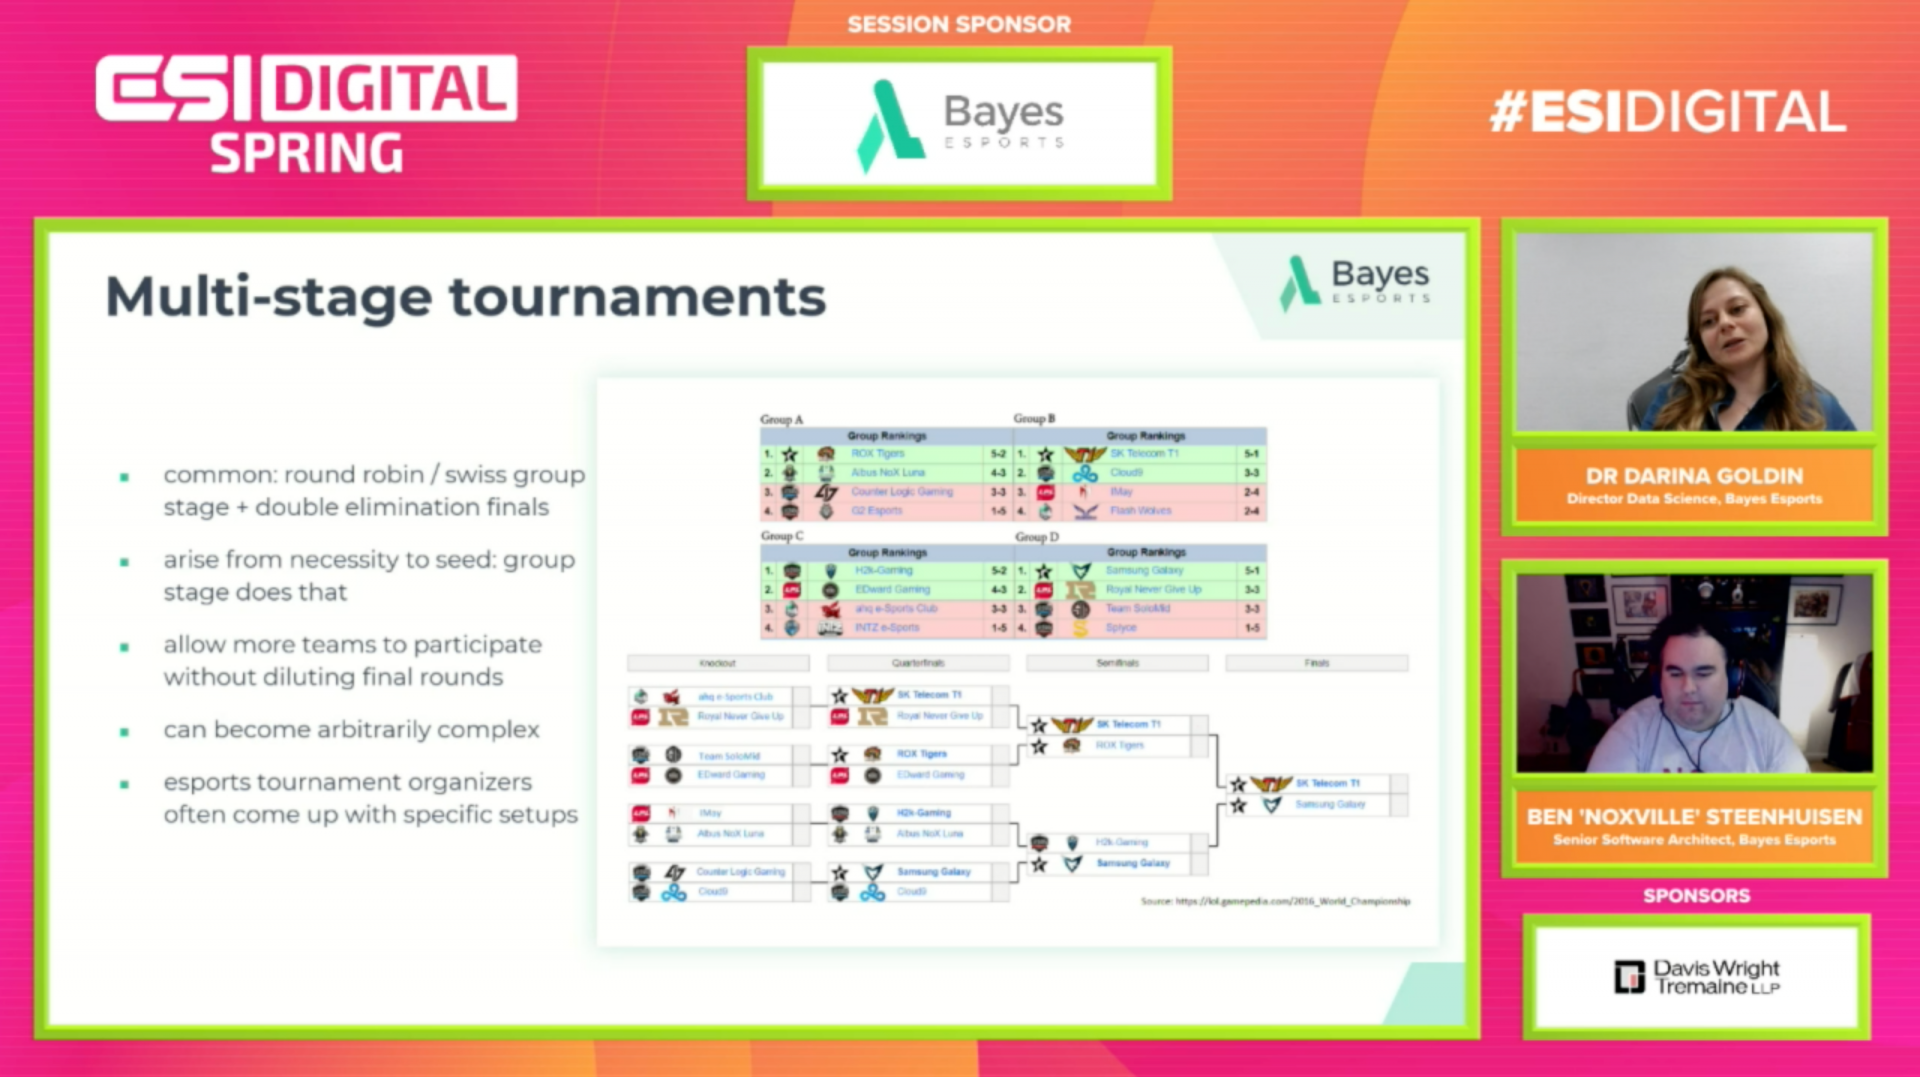 ESI Digital Spring: Bayes the fairest tournament